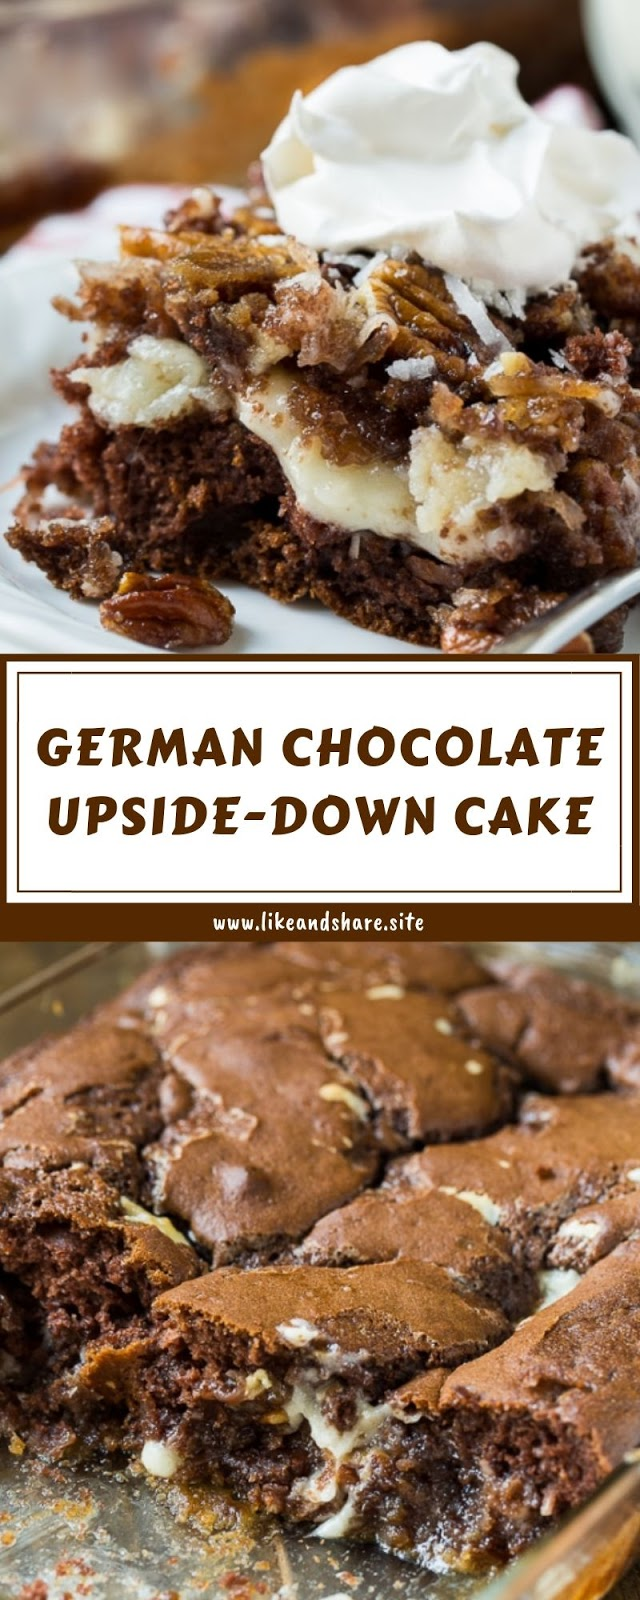 GERMAN CHOCOLATE UPSIDE-DOWN CAKE